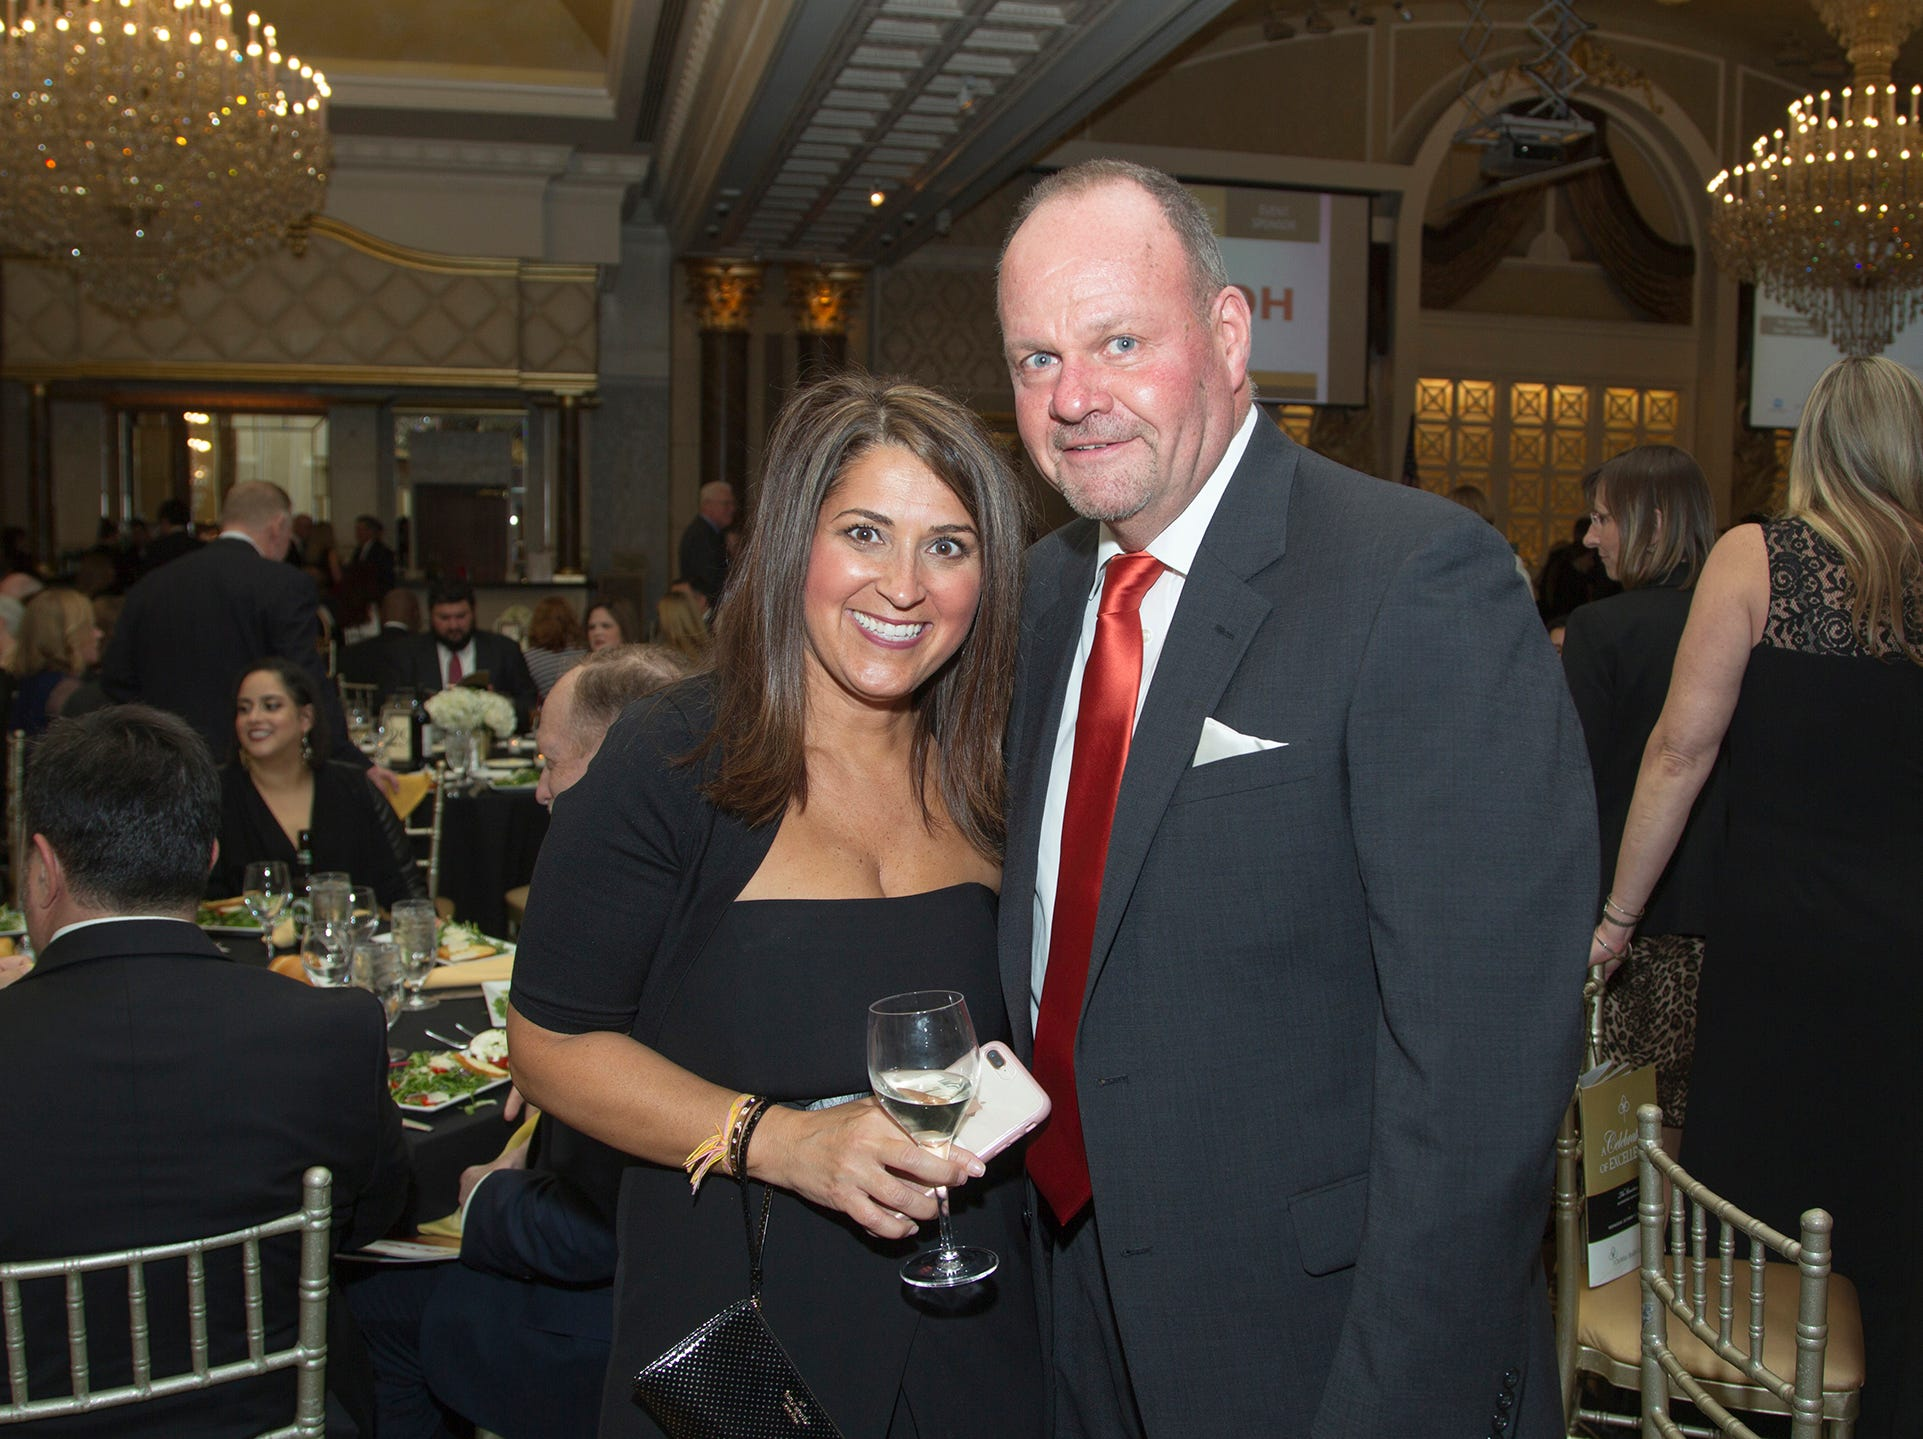 Patricia Mercurio, Peter Peterson. Christian Health Care Center held its ' A Celebration of Excellence' gala at the Venetian in Garfield.  10/17/2018